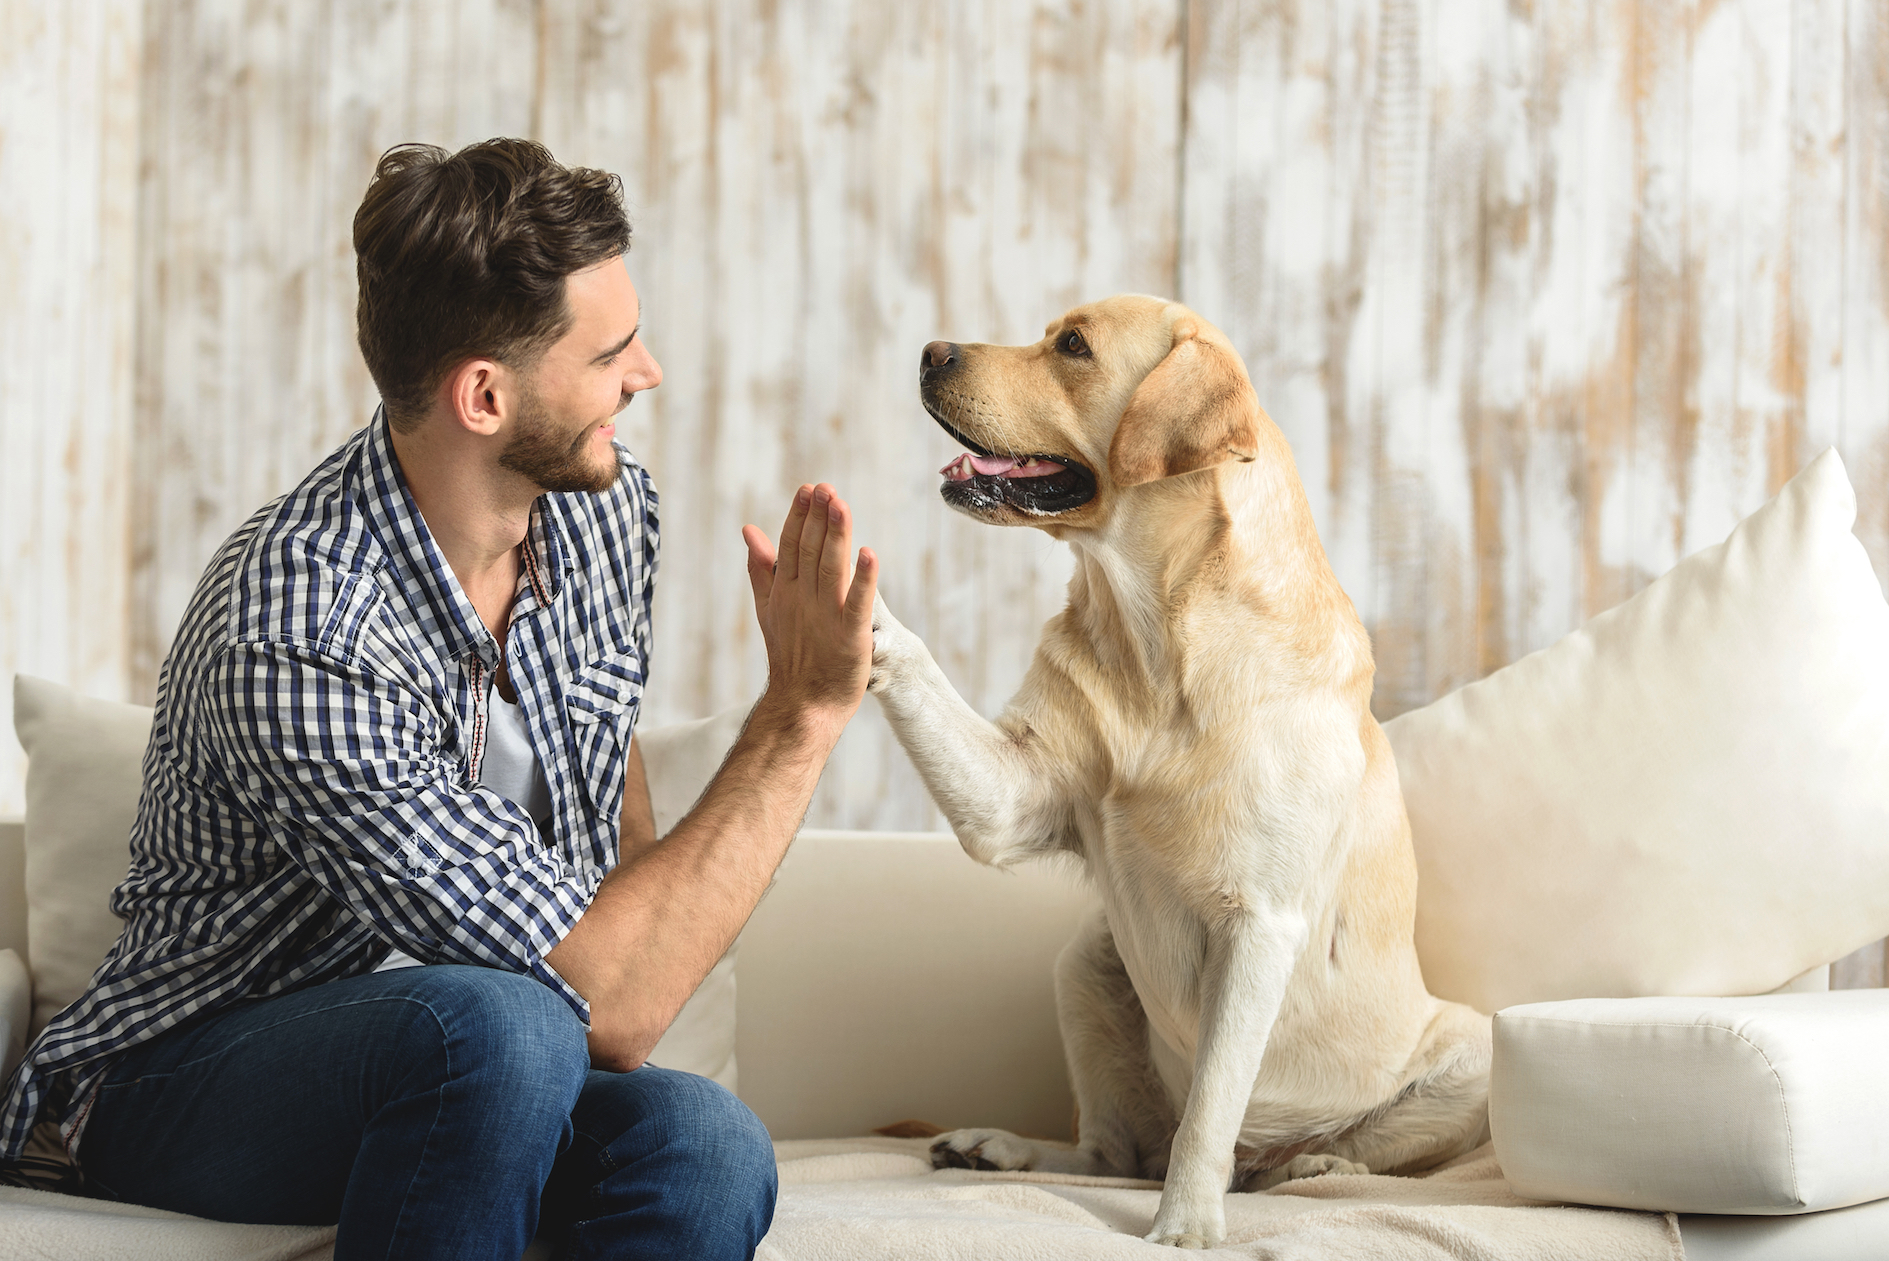 Researchers have identified a genetic marker in domestic dogs that causes extremely sociable and outgoing behavior.